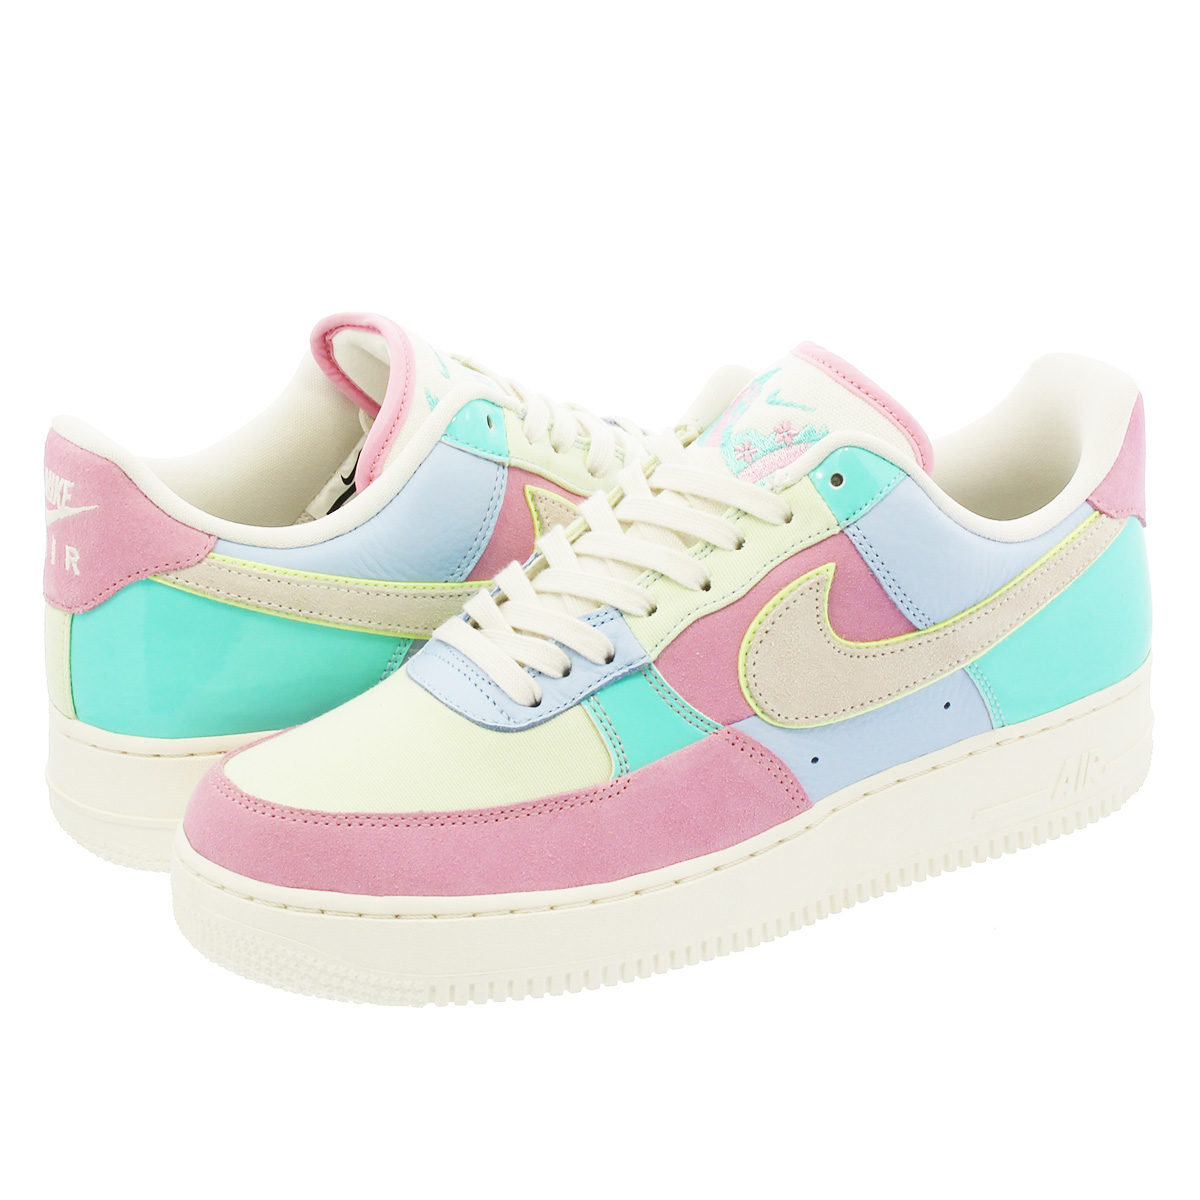 half off d33ca 0e3b5 NIKE AIR FORCE 1 LOW Nike air force 1 low Easter egg PINK/LIGHT BLUE/SAIL  ah8462-400